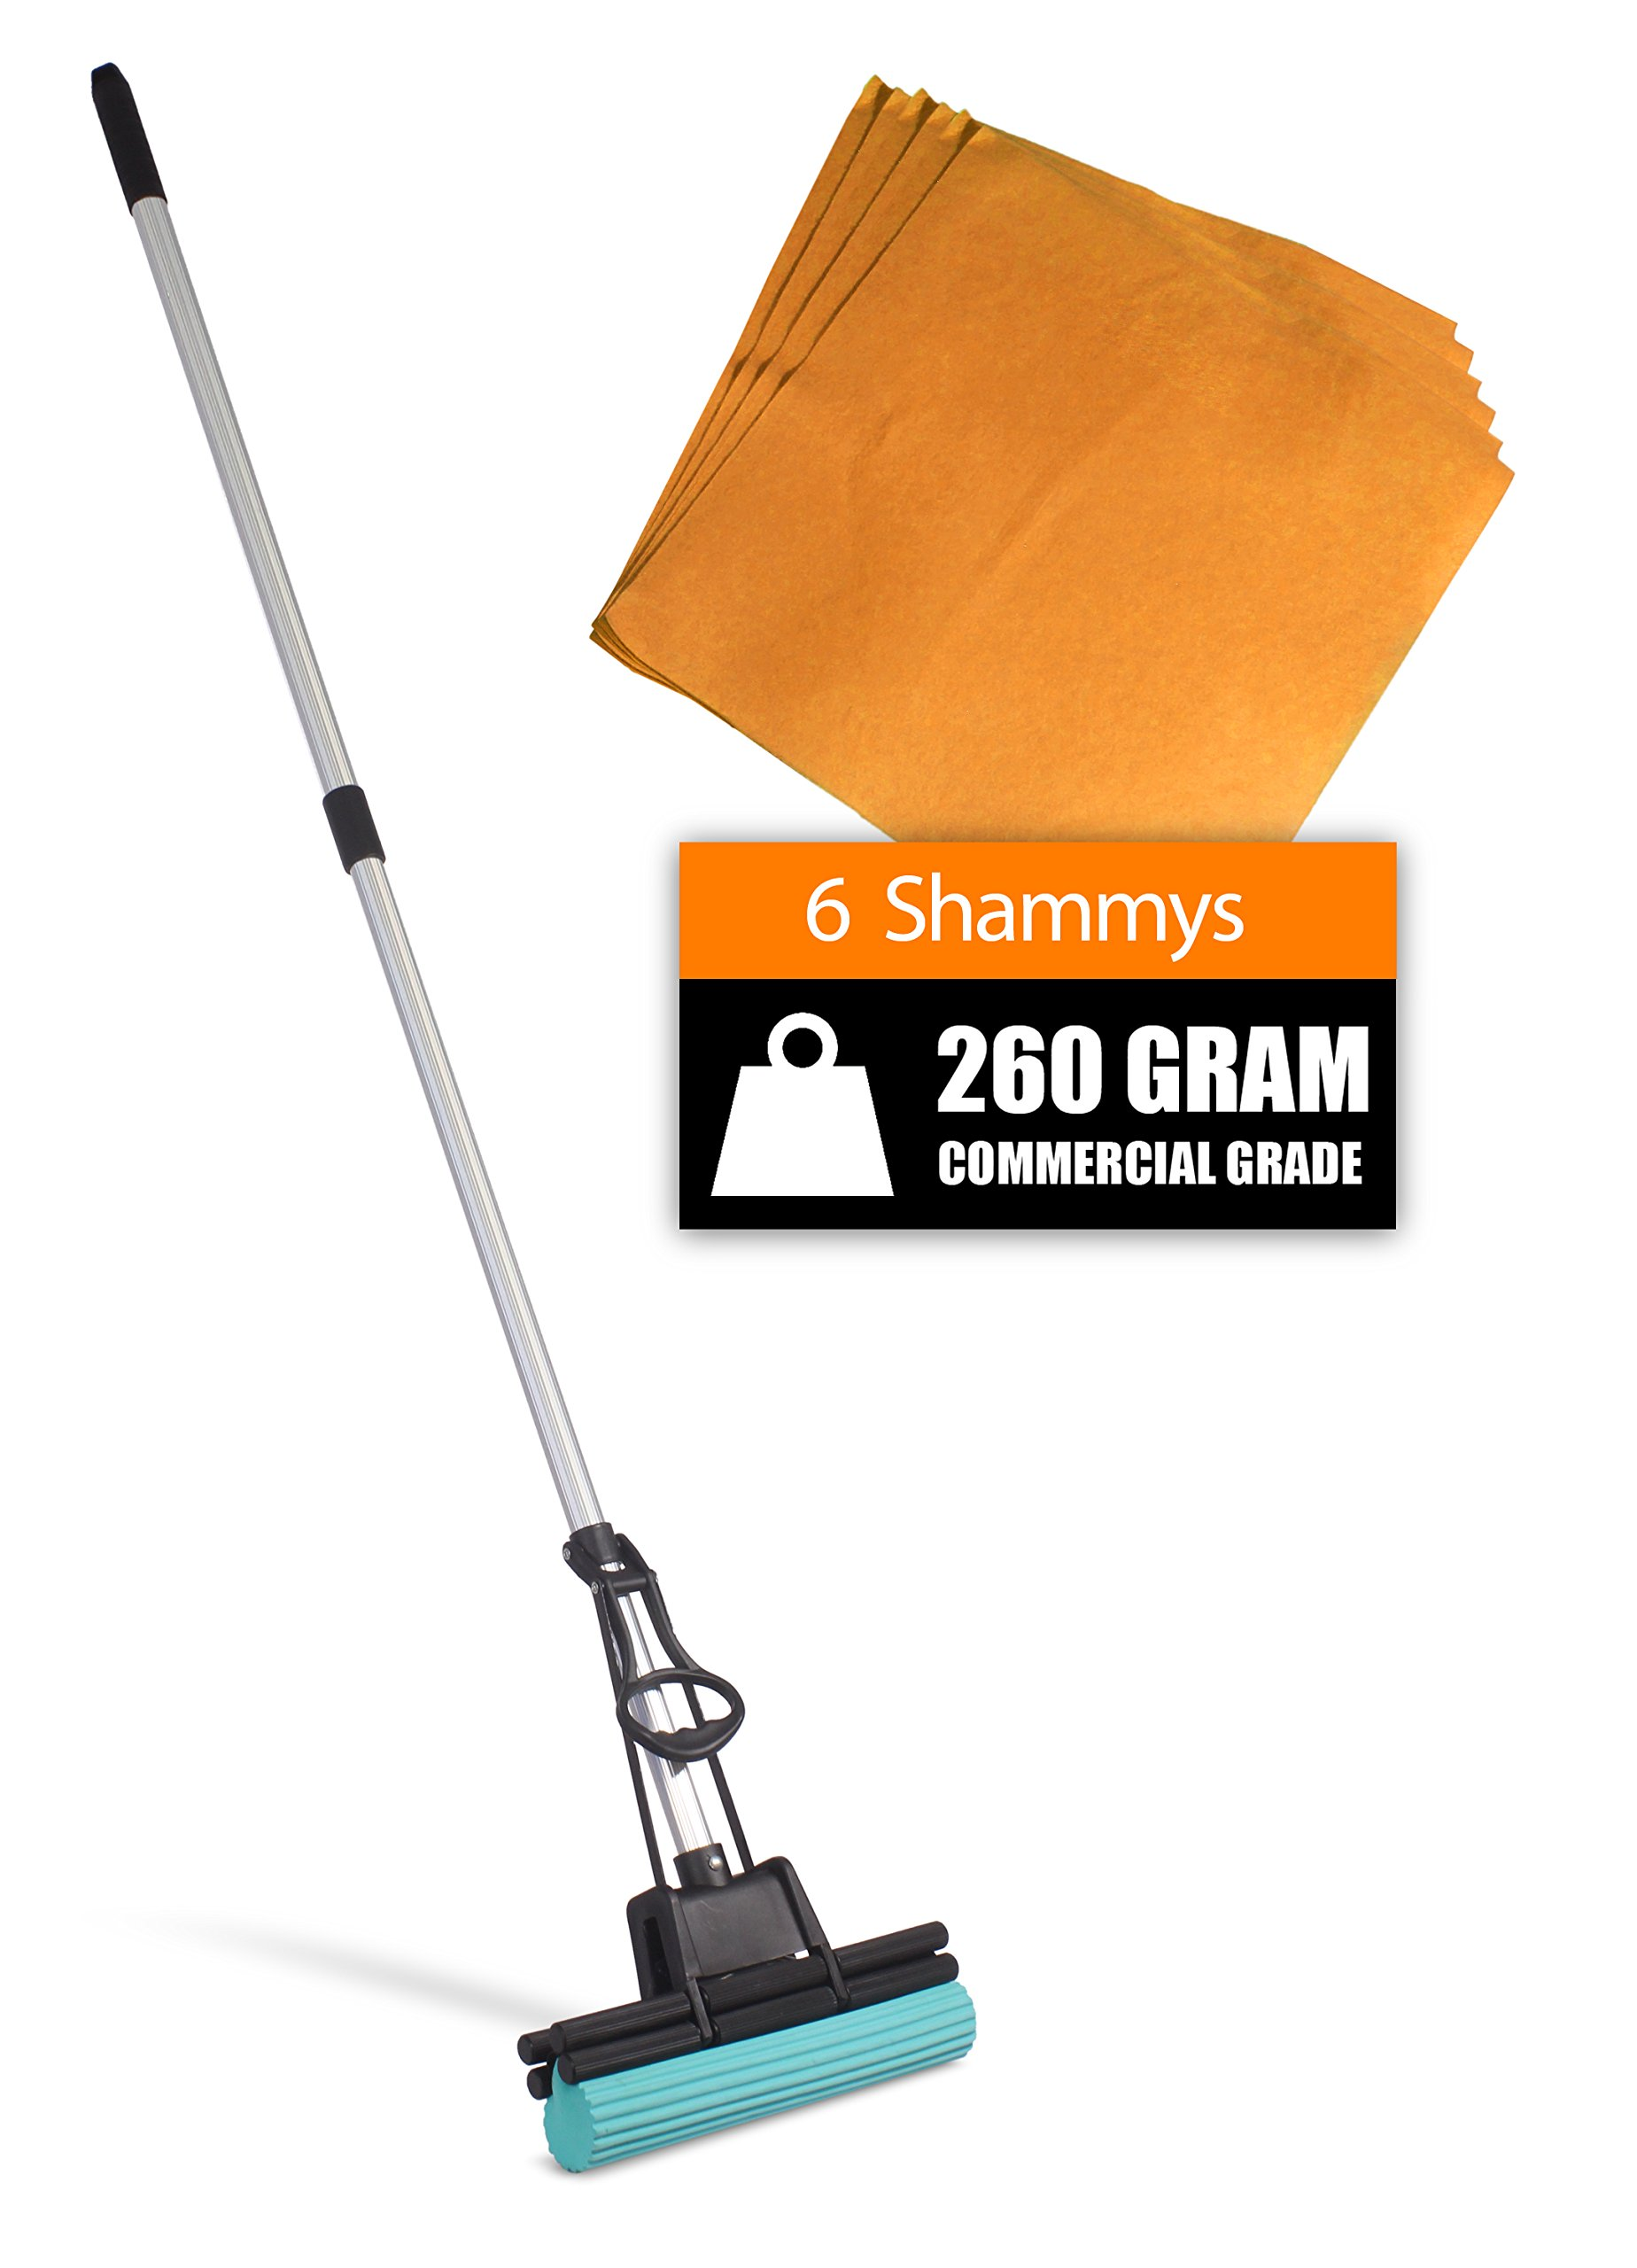 PVA Professional Double Roller Ultra Foam Rubber Mop Cleaning Kit (PVA Mop - 6x Commercial Shammys)